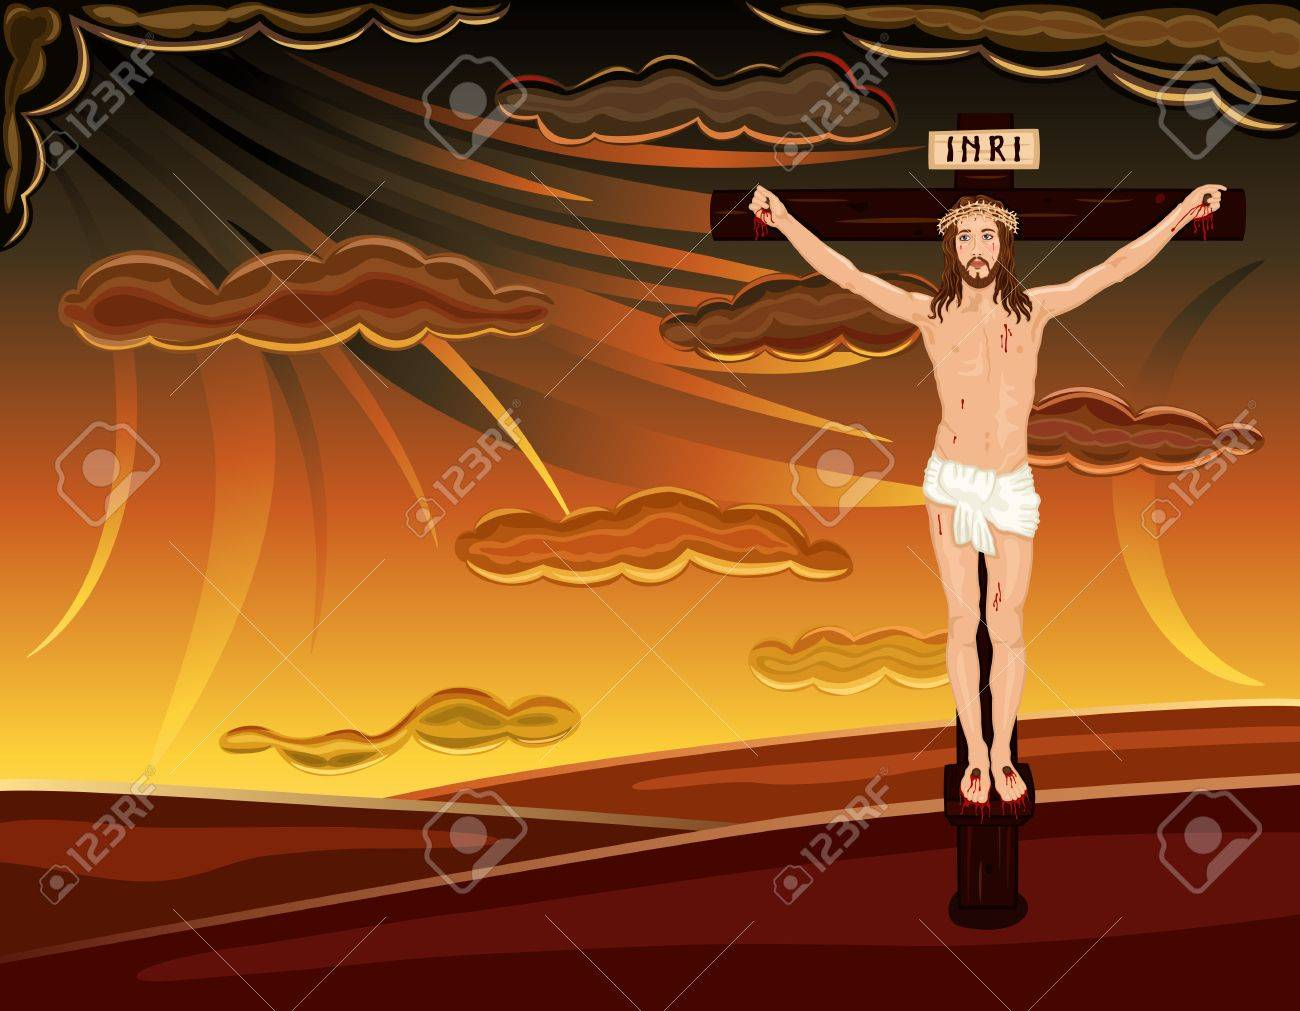 easter religious card with crucifixion of jesus on golgotha hill